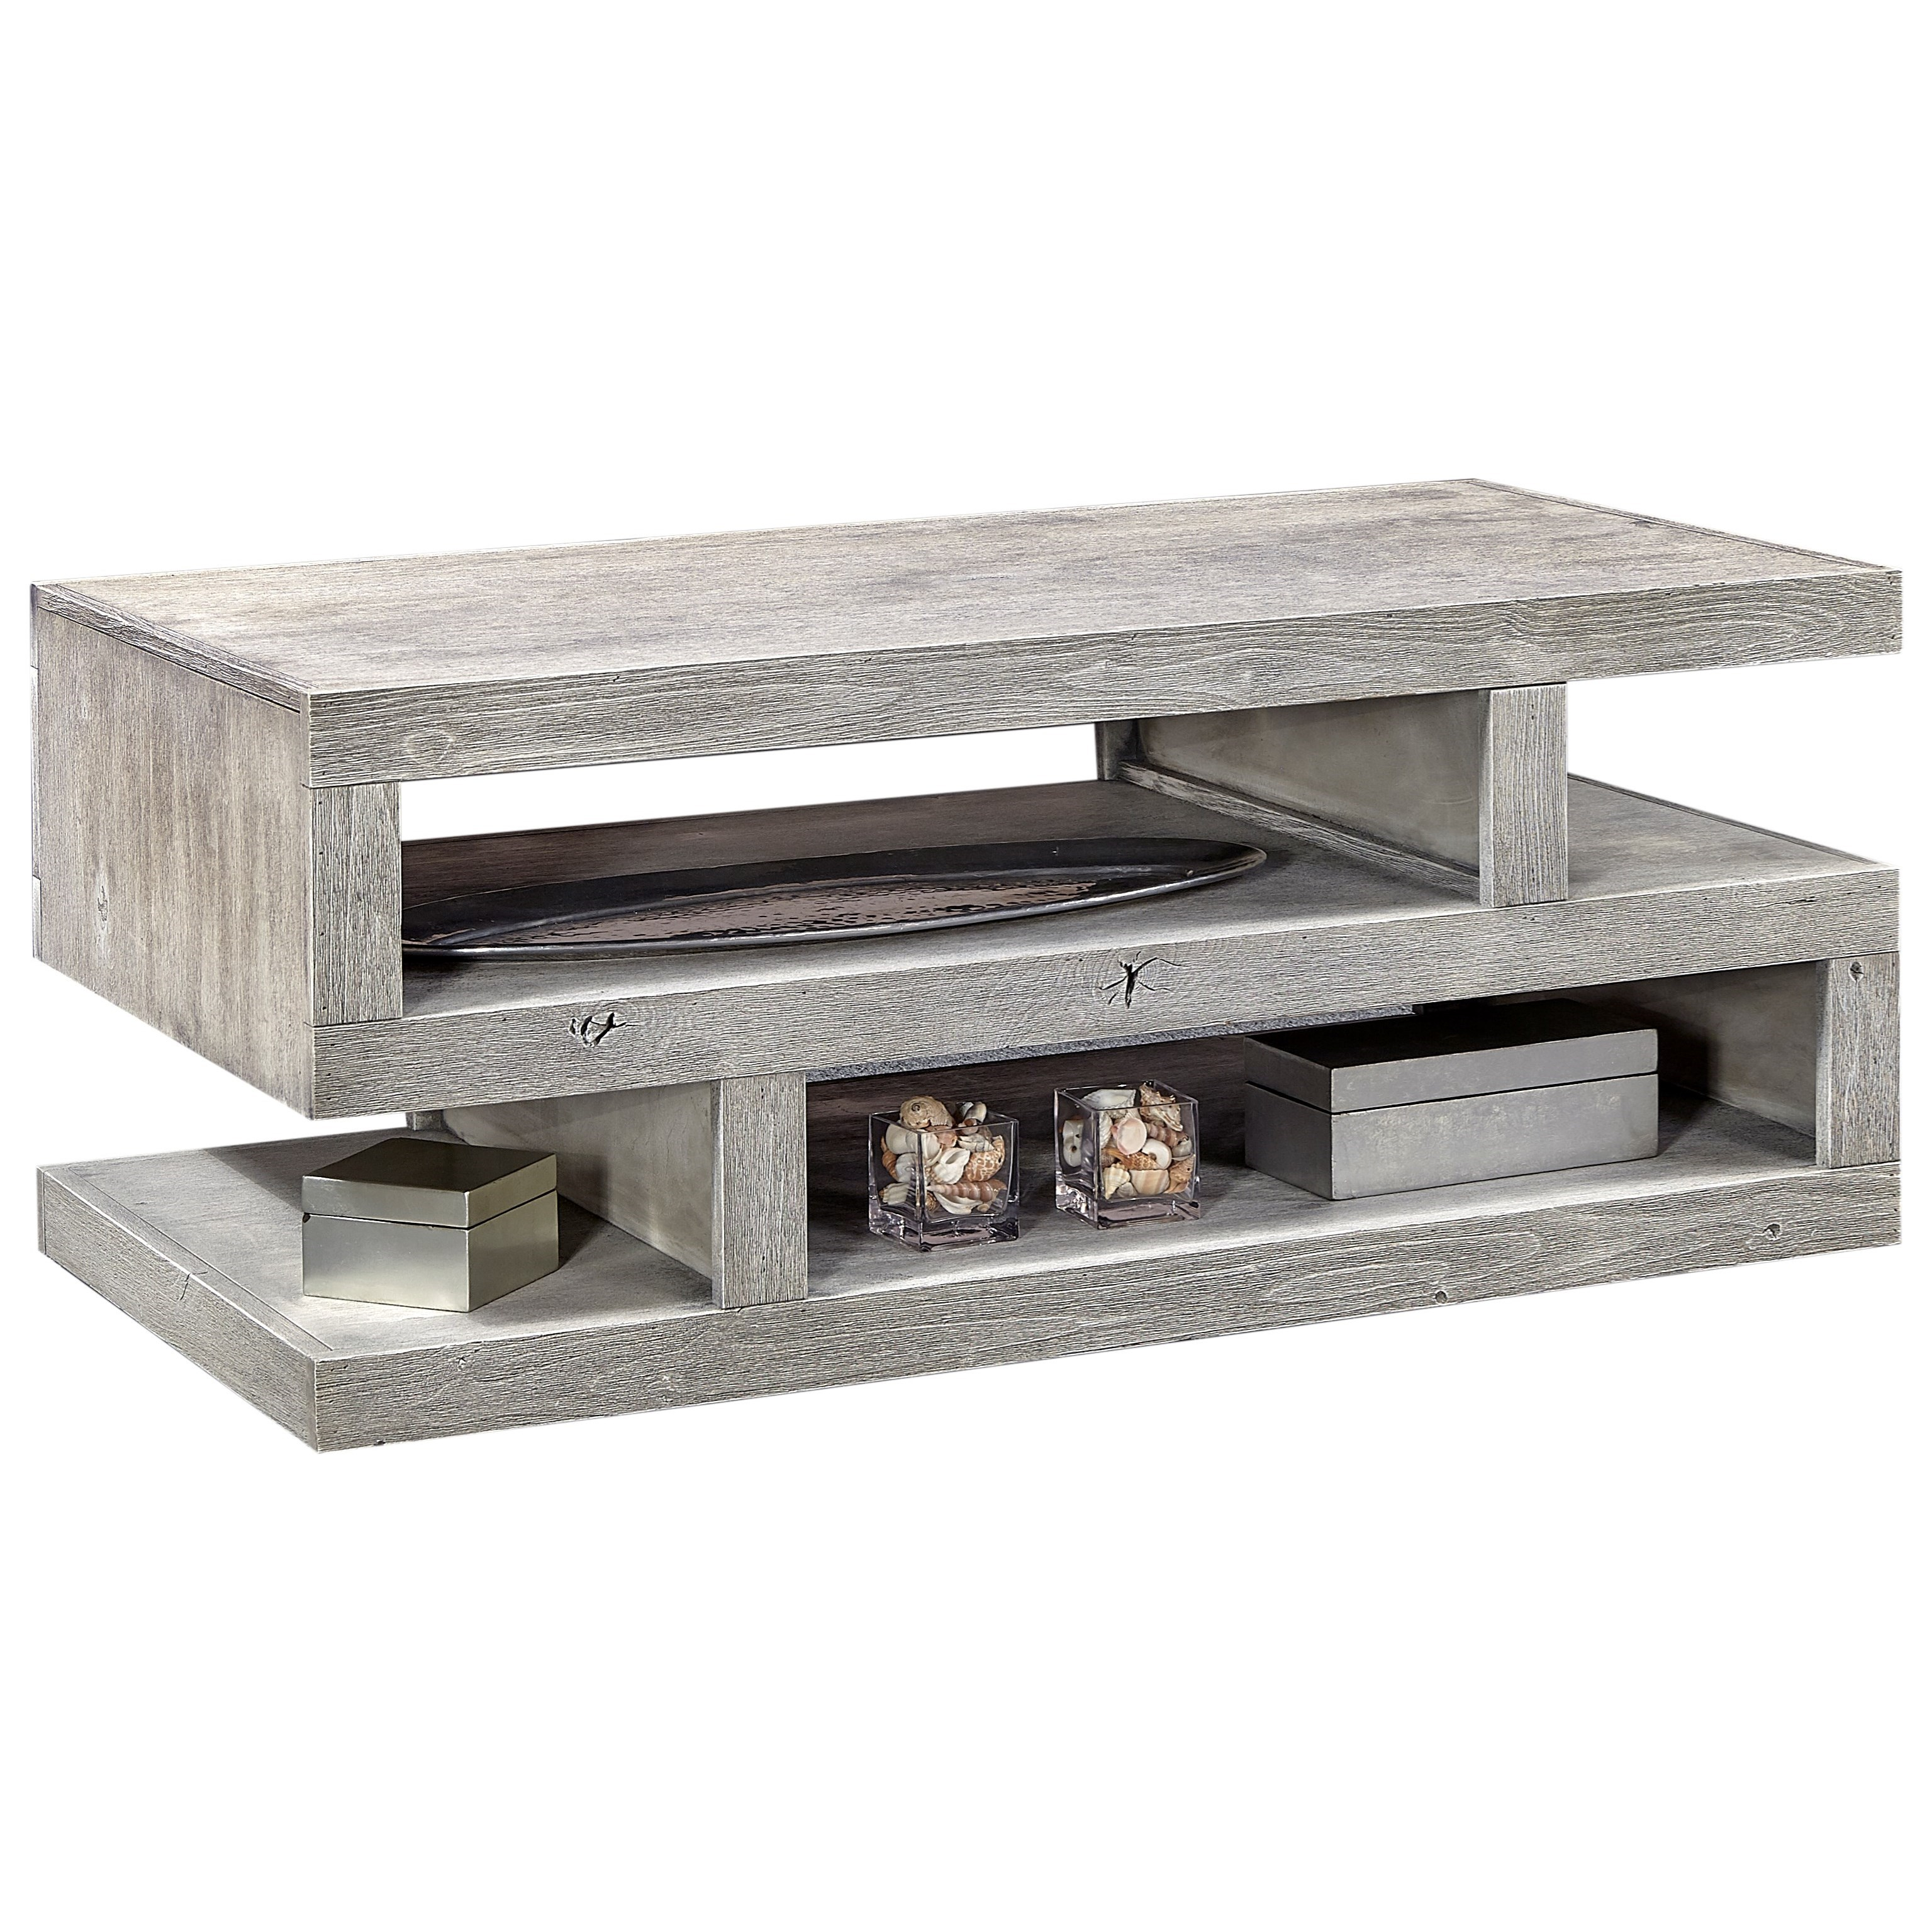 Contemporary Cocktail Table with Extra Shelf Space